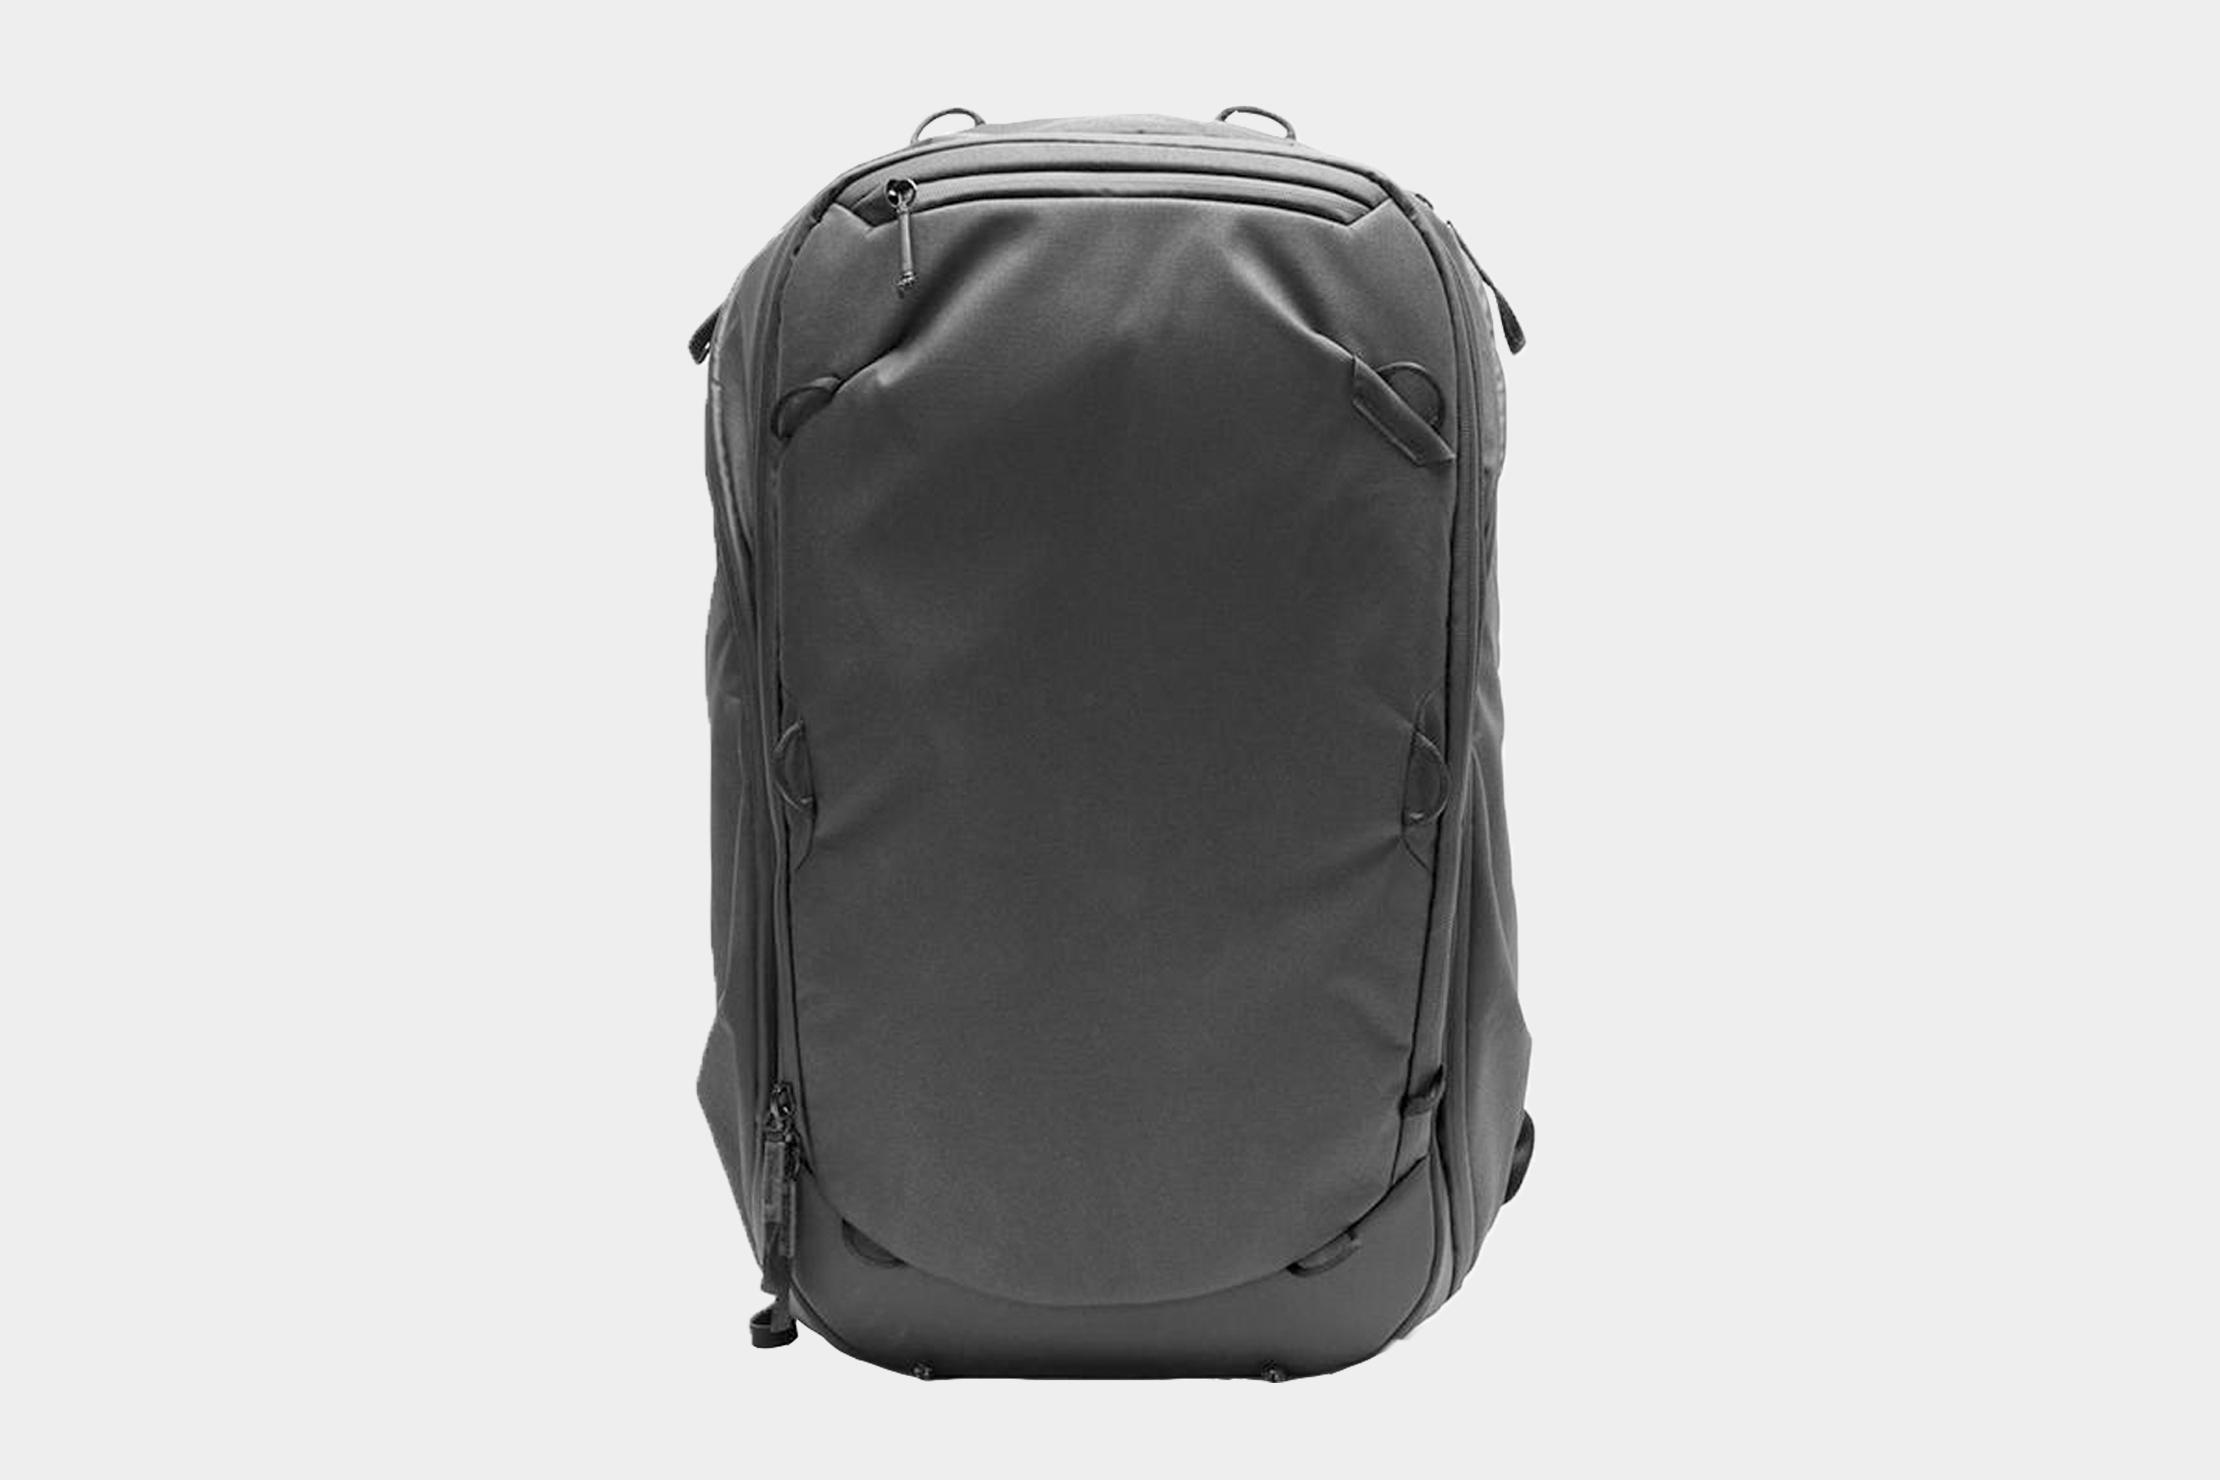 Peak Design Peak Design Travel Backpack Review Pack Hacker